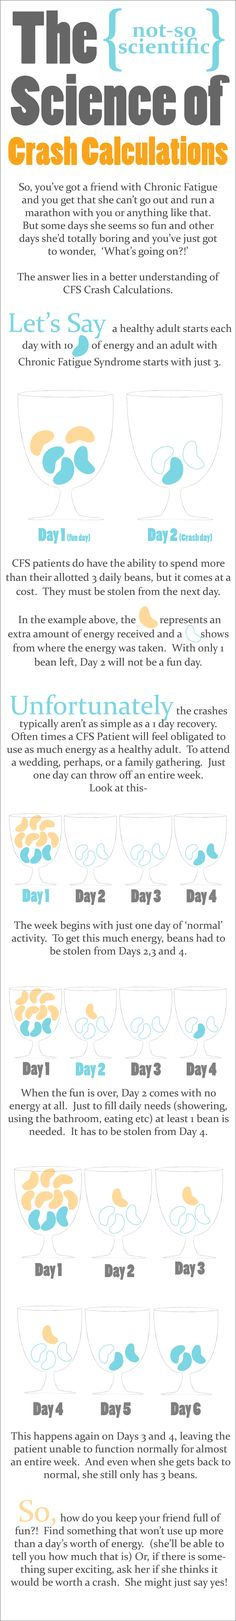 Chronic fatigue crashes - this is a great way to help others understand